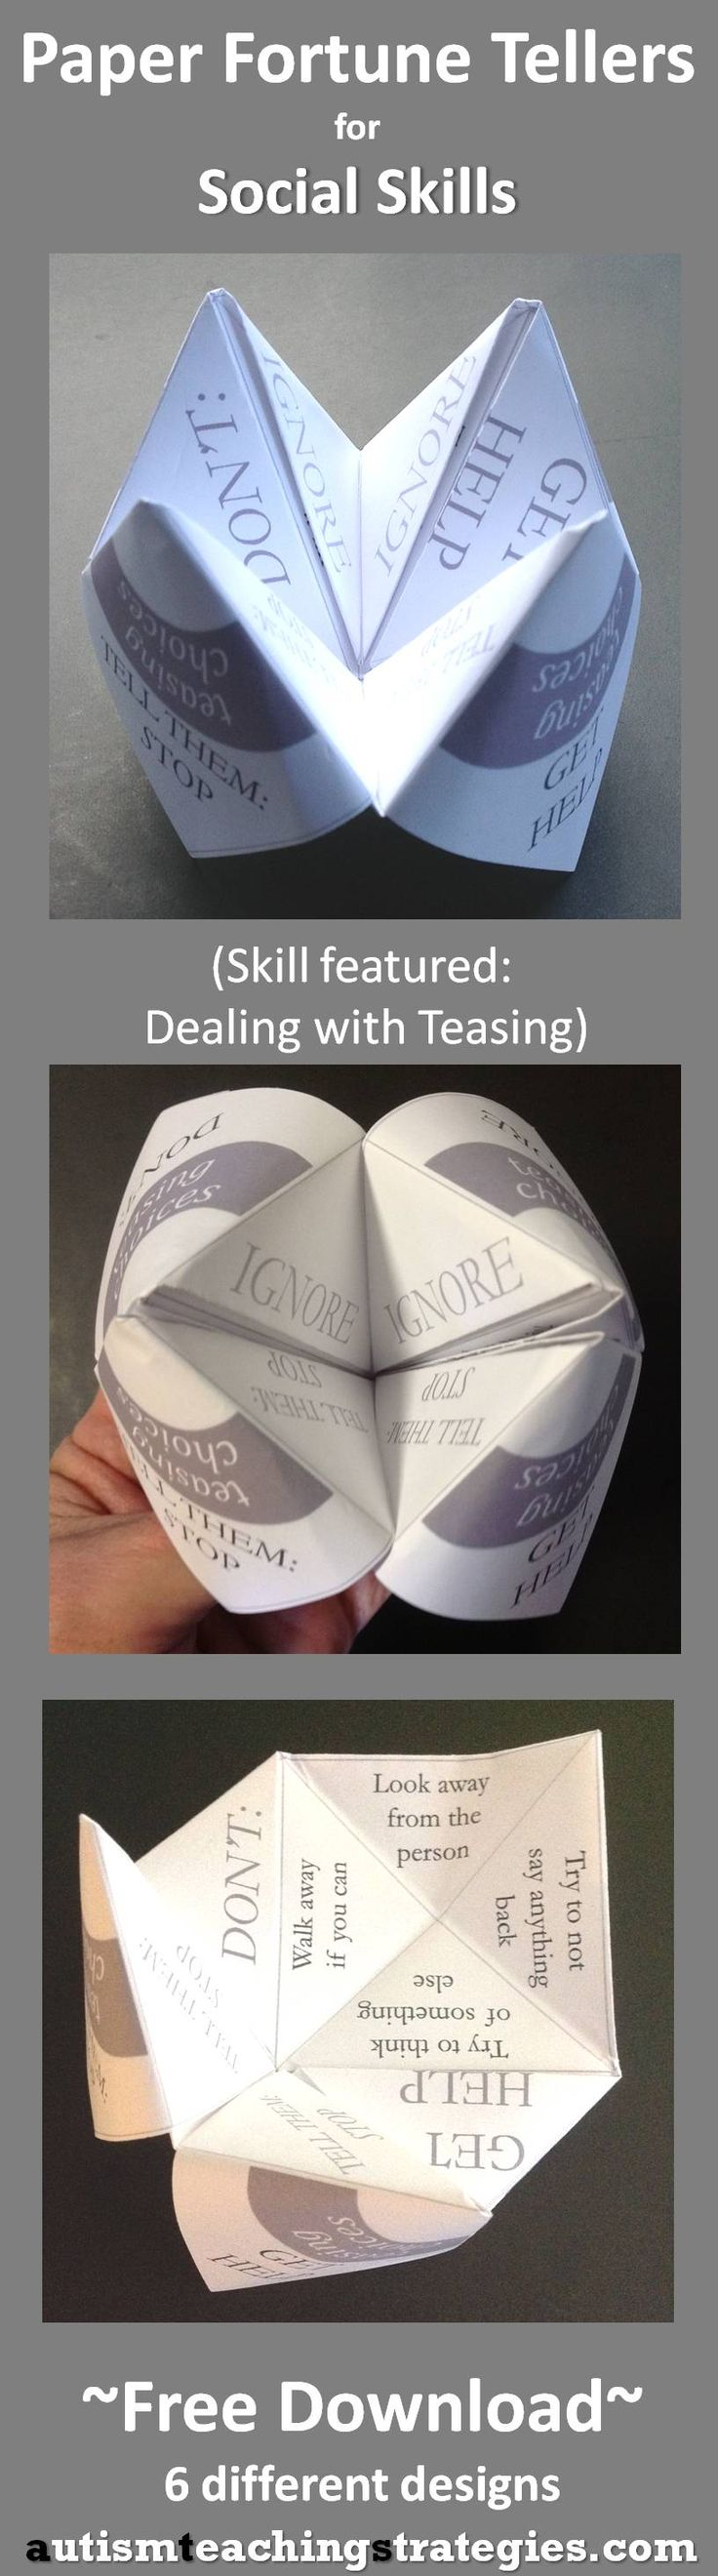 "This is one of six paper ""fortune tellers"" on various social skills themes."